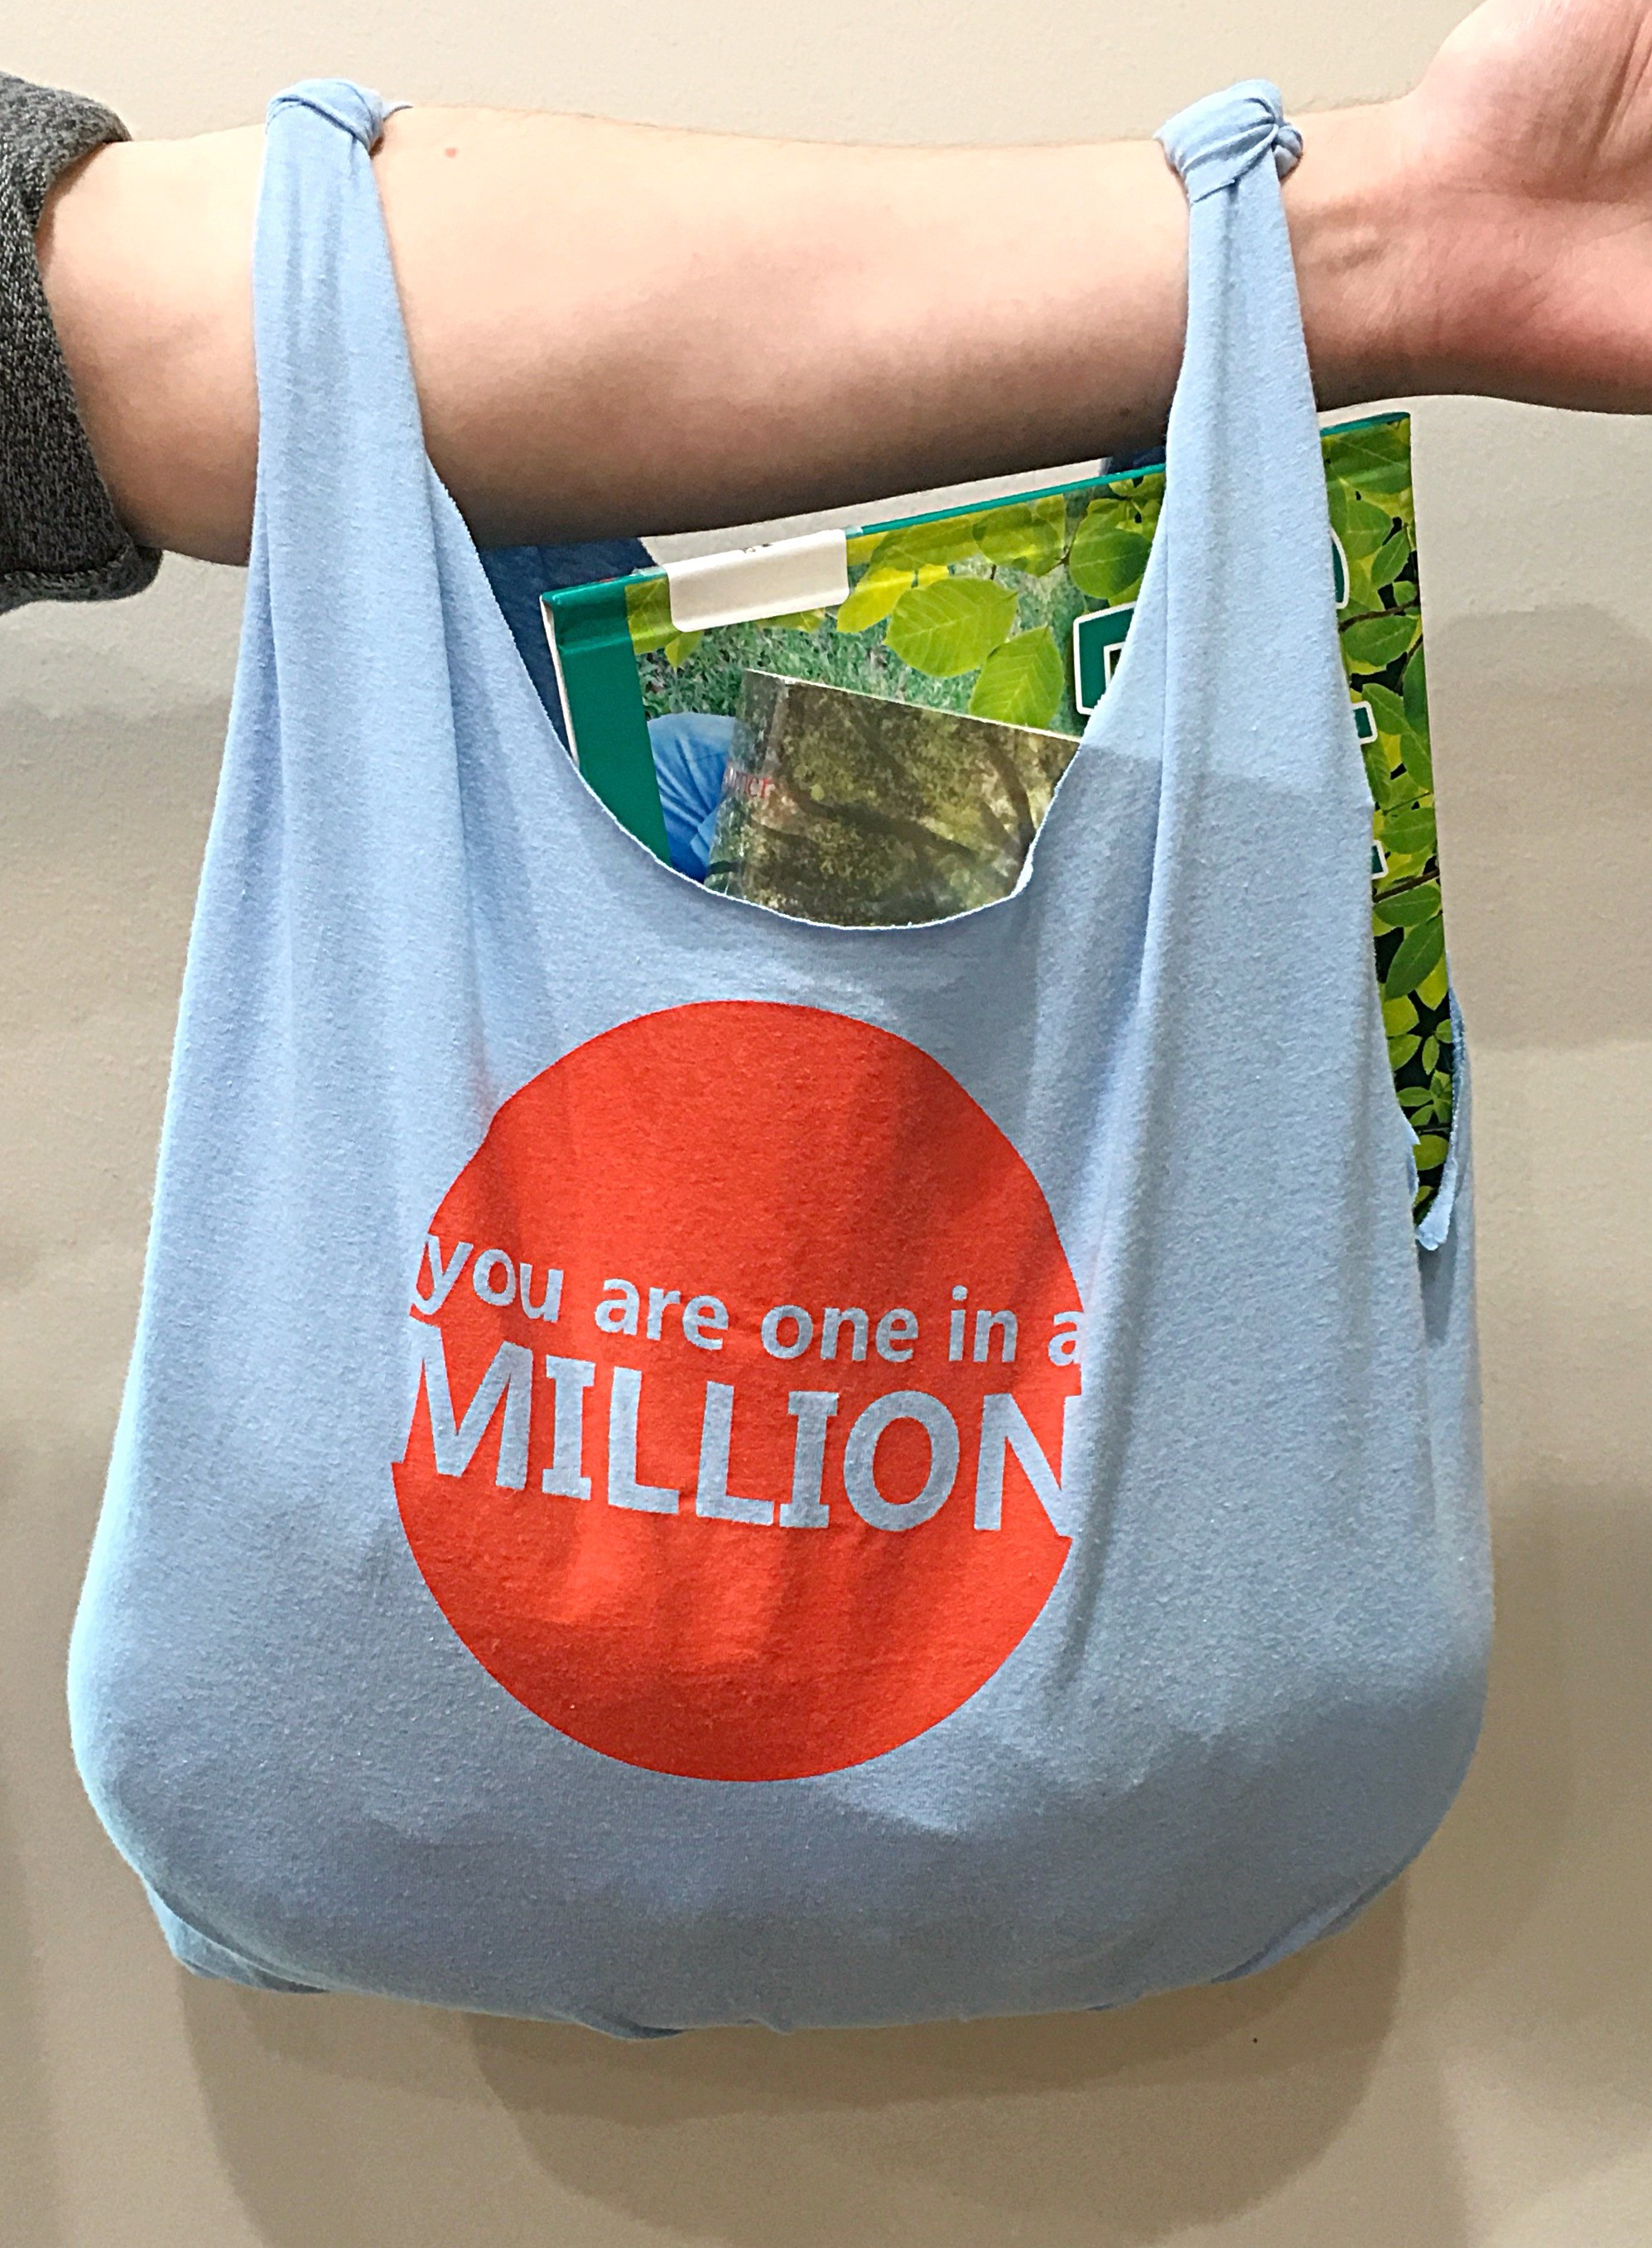 T-shirt recycled into a bag.